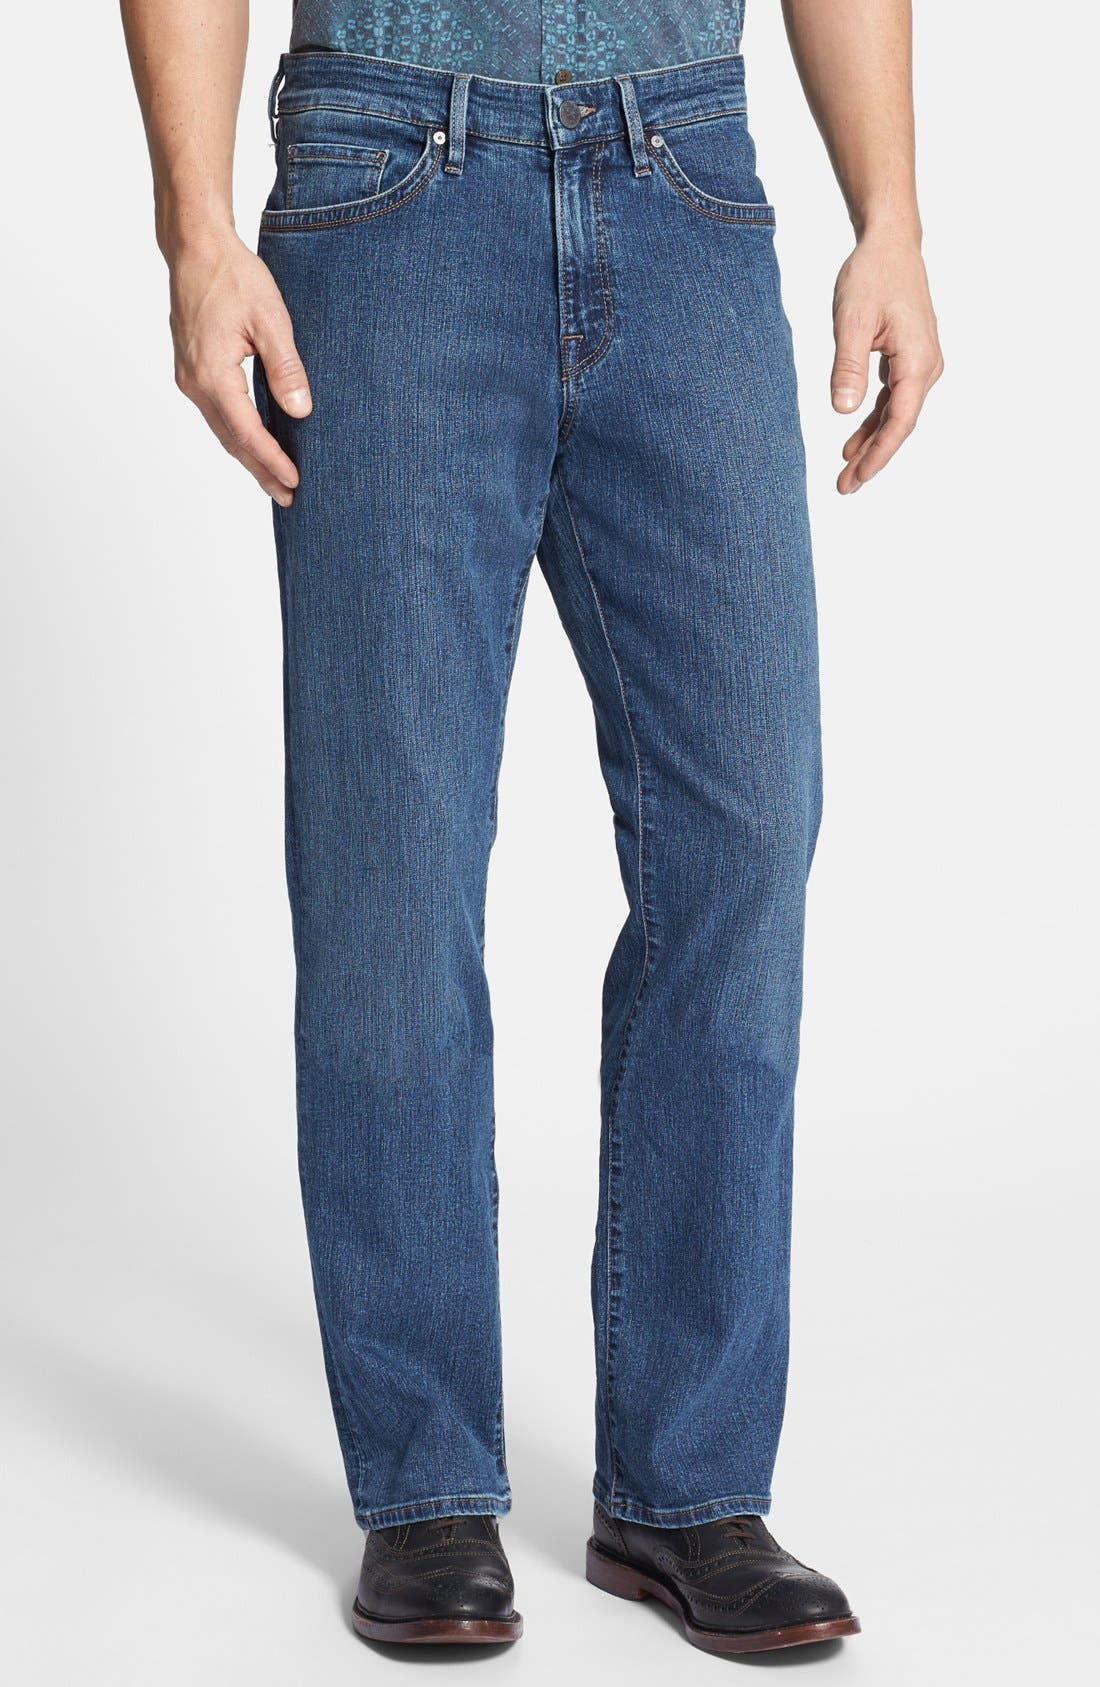 34 HERITAGE,                             'Charisma' Classic Relaxed Fit Jeans,                             Main thumbnail 1, color,                             MID COMFORT